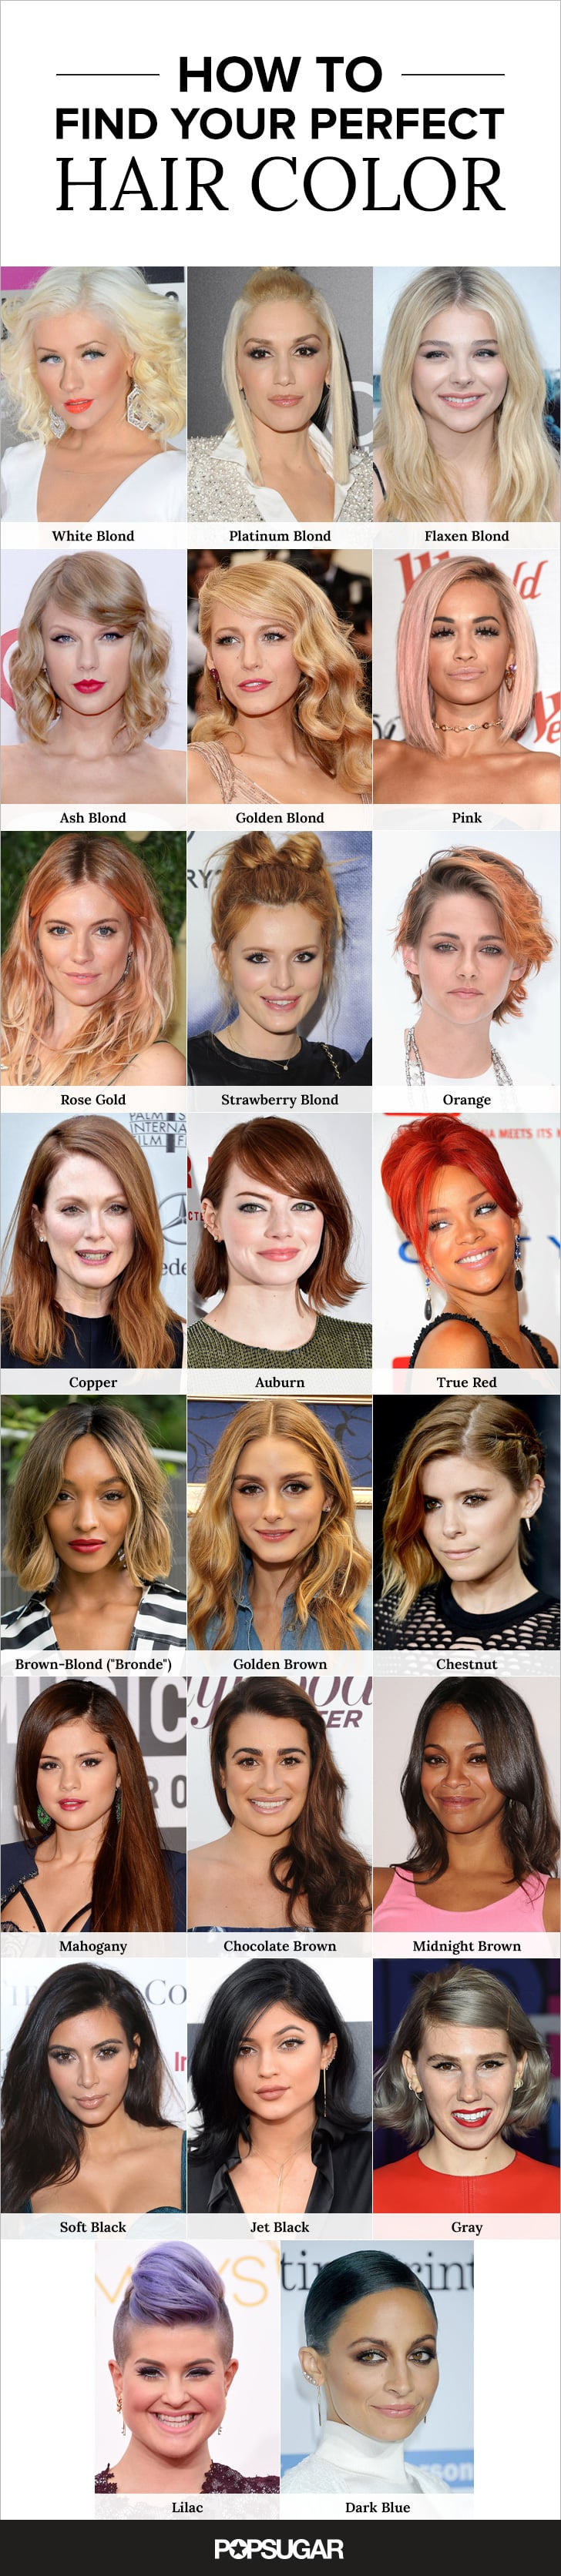 Pin It! | Hair-Color Guide